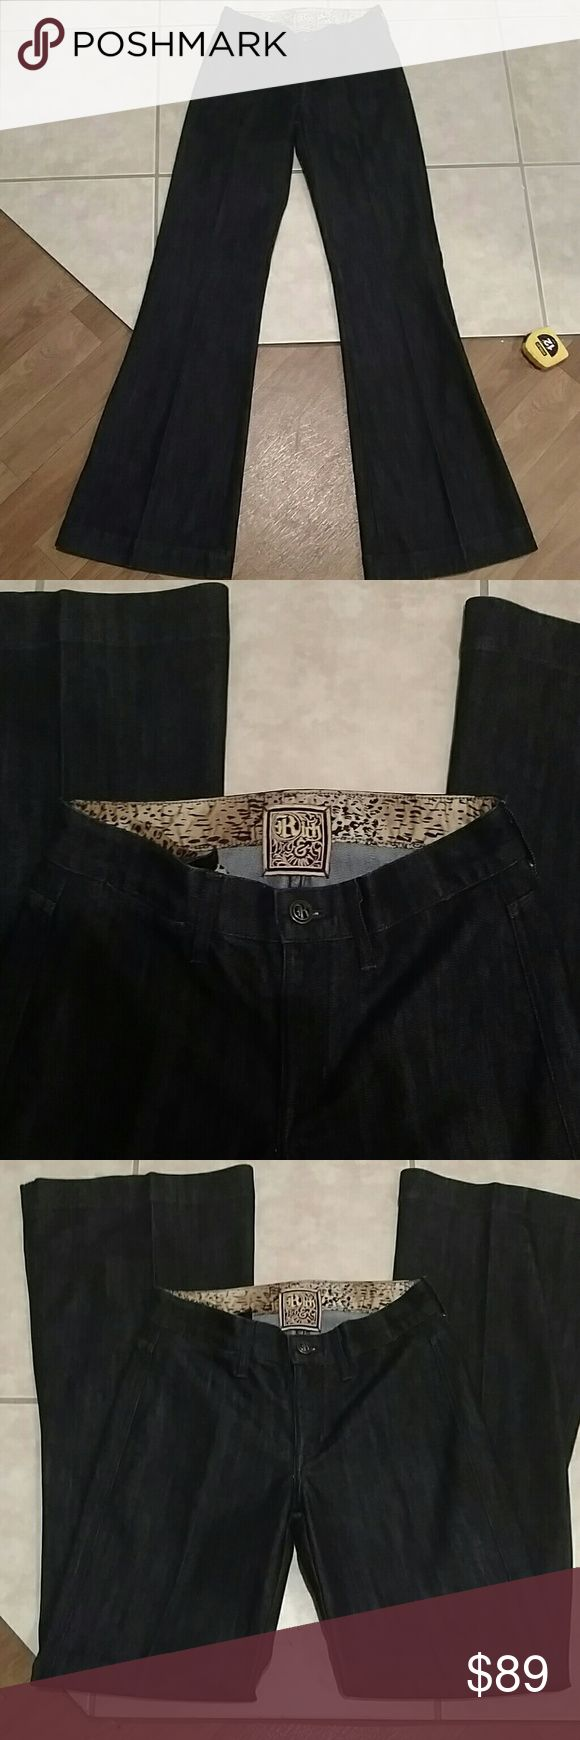 Rich & Skinny jeans NWOT and free purse Beautiful midnight blue rich and skinny jeans. Brand new and never worn. Has a beautiful pleated crease down the middle for the great wide, flare look. Great quality denim and so sharp looking. Size 25 with a 33 inch inseam. Rise is 8 inches and waist flat measures 14 inches. 60% cotton 40% PES. Honestly so stunning, pictures don't do these justice.  Adding a cute B. Makowsky purse for free. Great for St. Paddy's day. In worn condition but leather can…